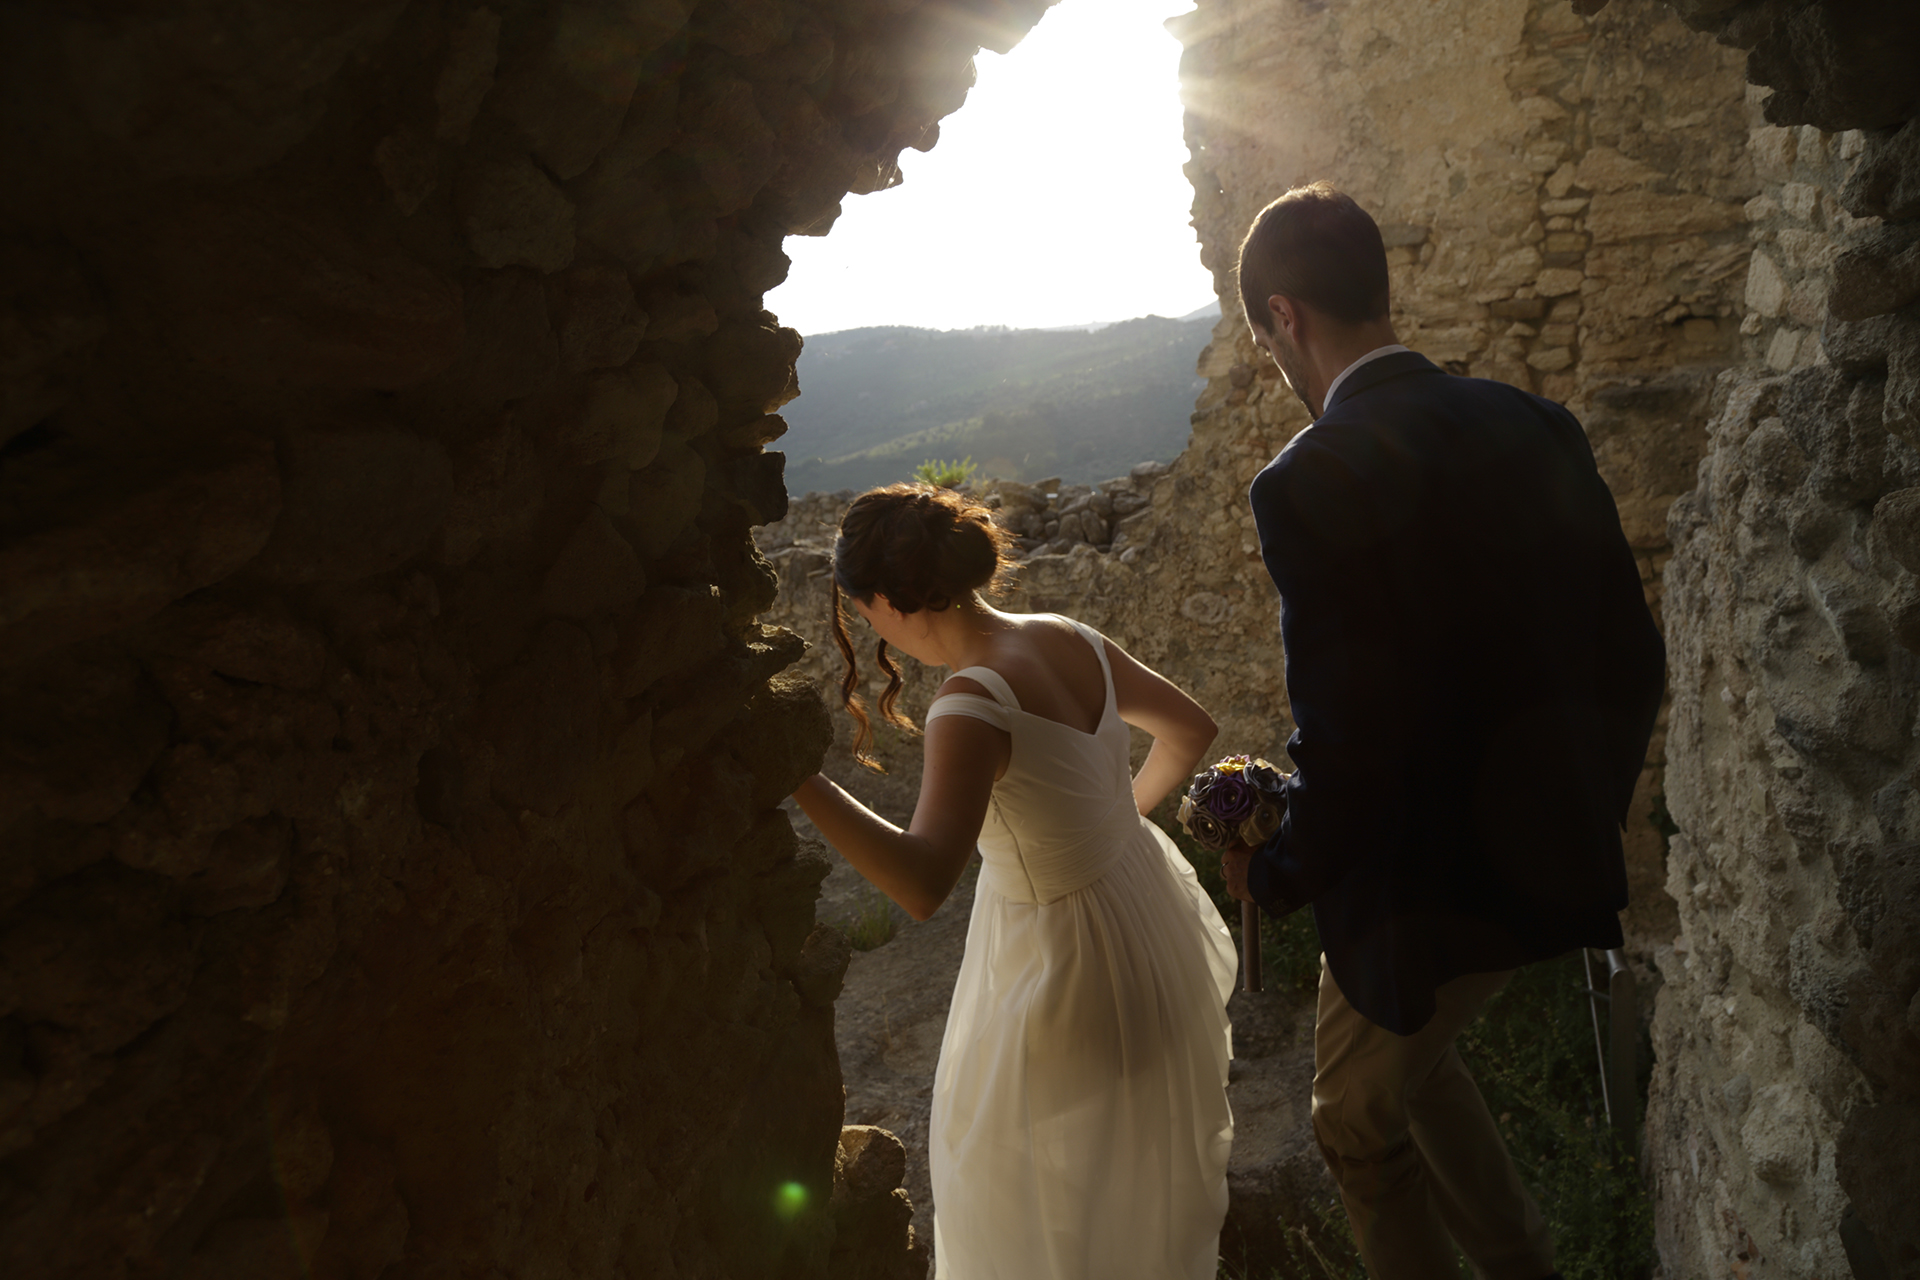 Calabria, Italy Outdoor Elopement Photographer | After the ceremony, the bride and groom descend from the castle